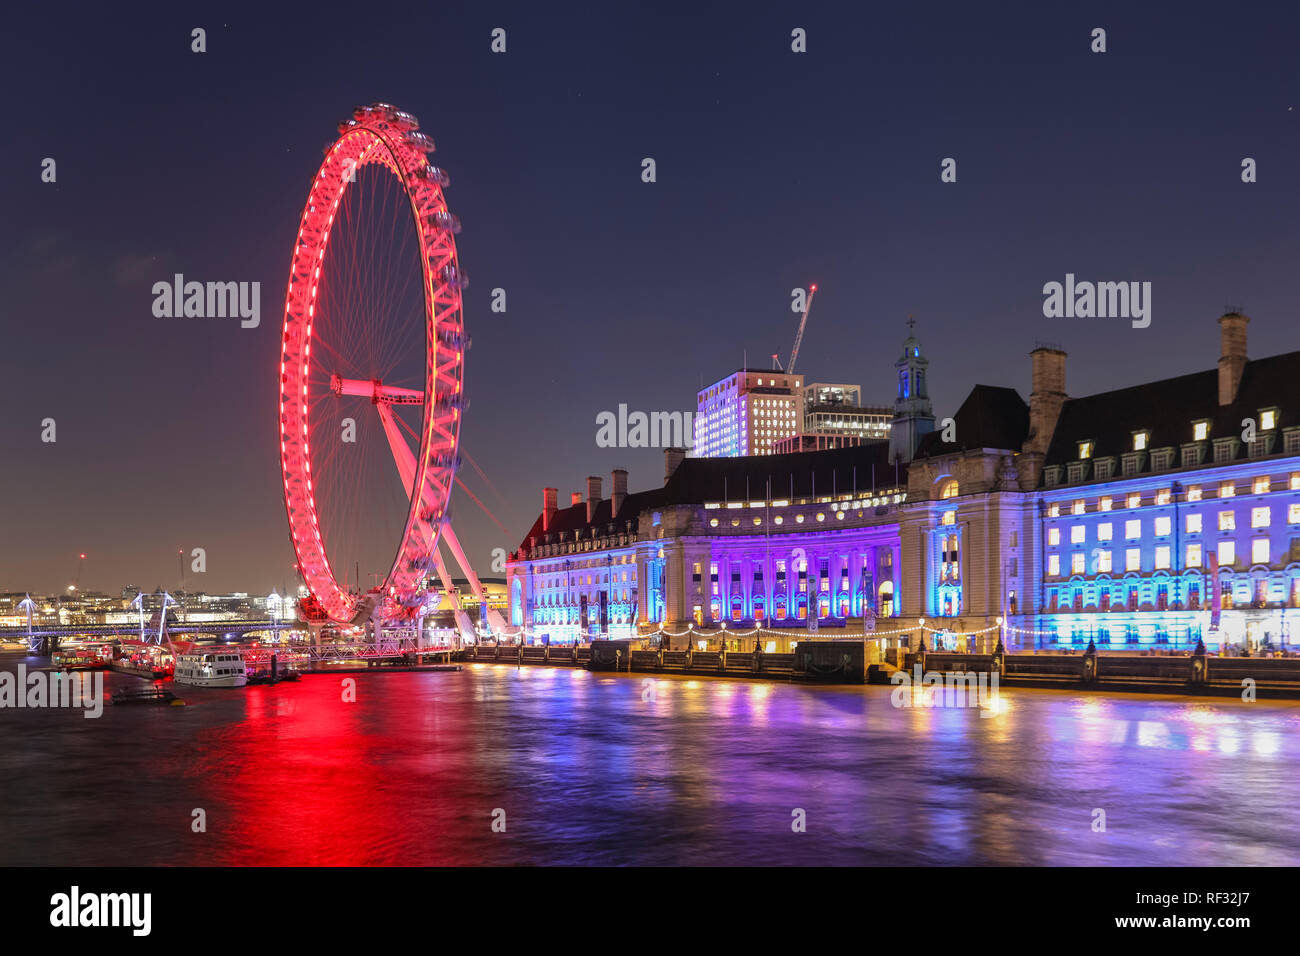 Westminster, London, 23rd Jan 2019. The sun sets and night falls over Big Ben, the Houses of Parliament, Westminster Bridge and the River Thames in Westminster, following a cold and relatively calm day in the capital. Credit: Imageplotter News and Sports/Alamy Live News Stock Photo